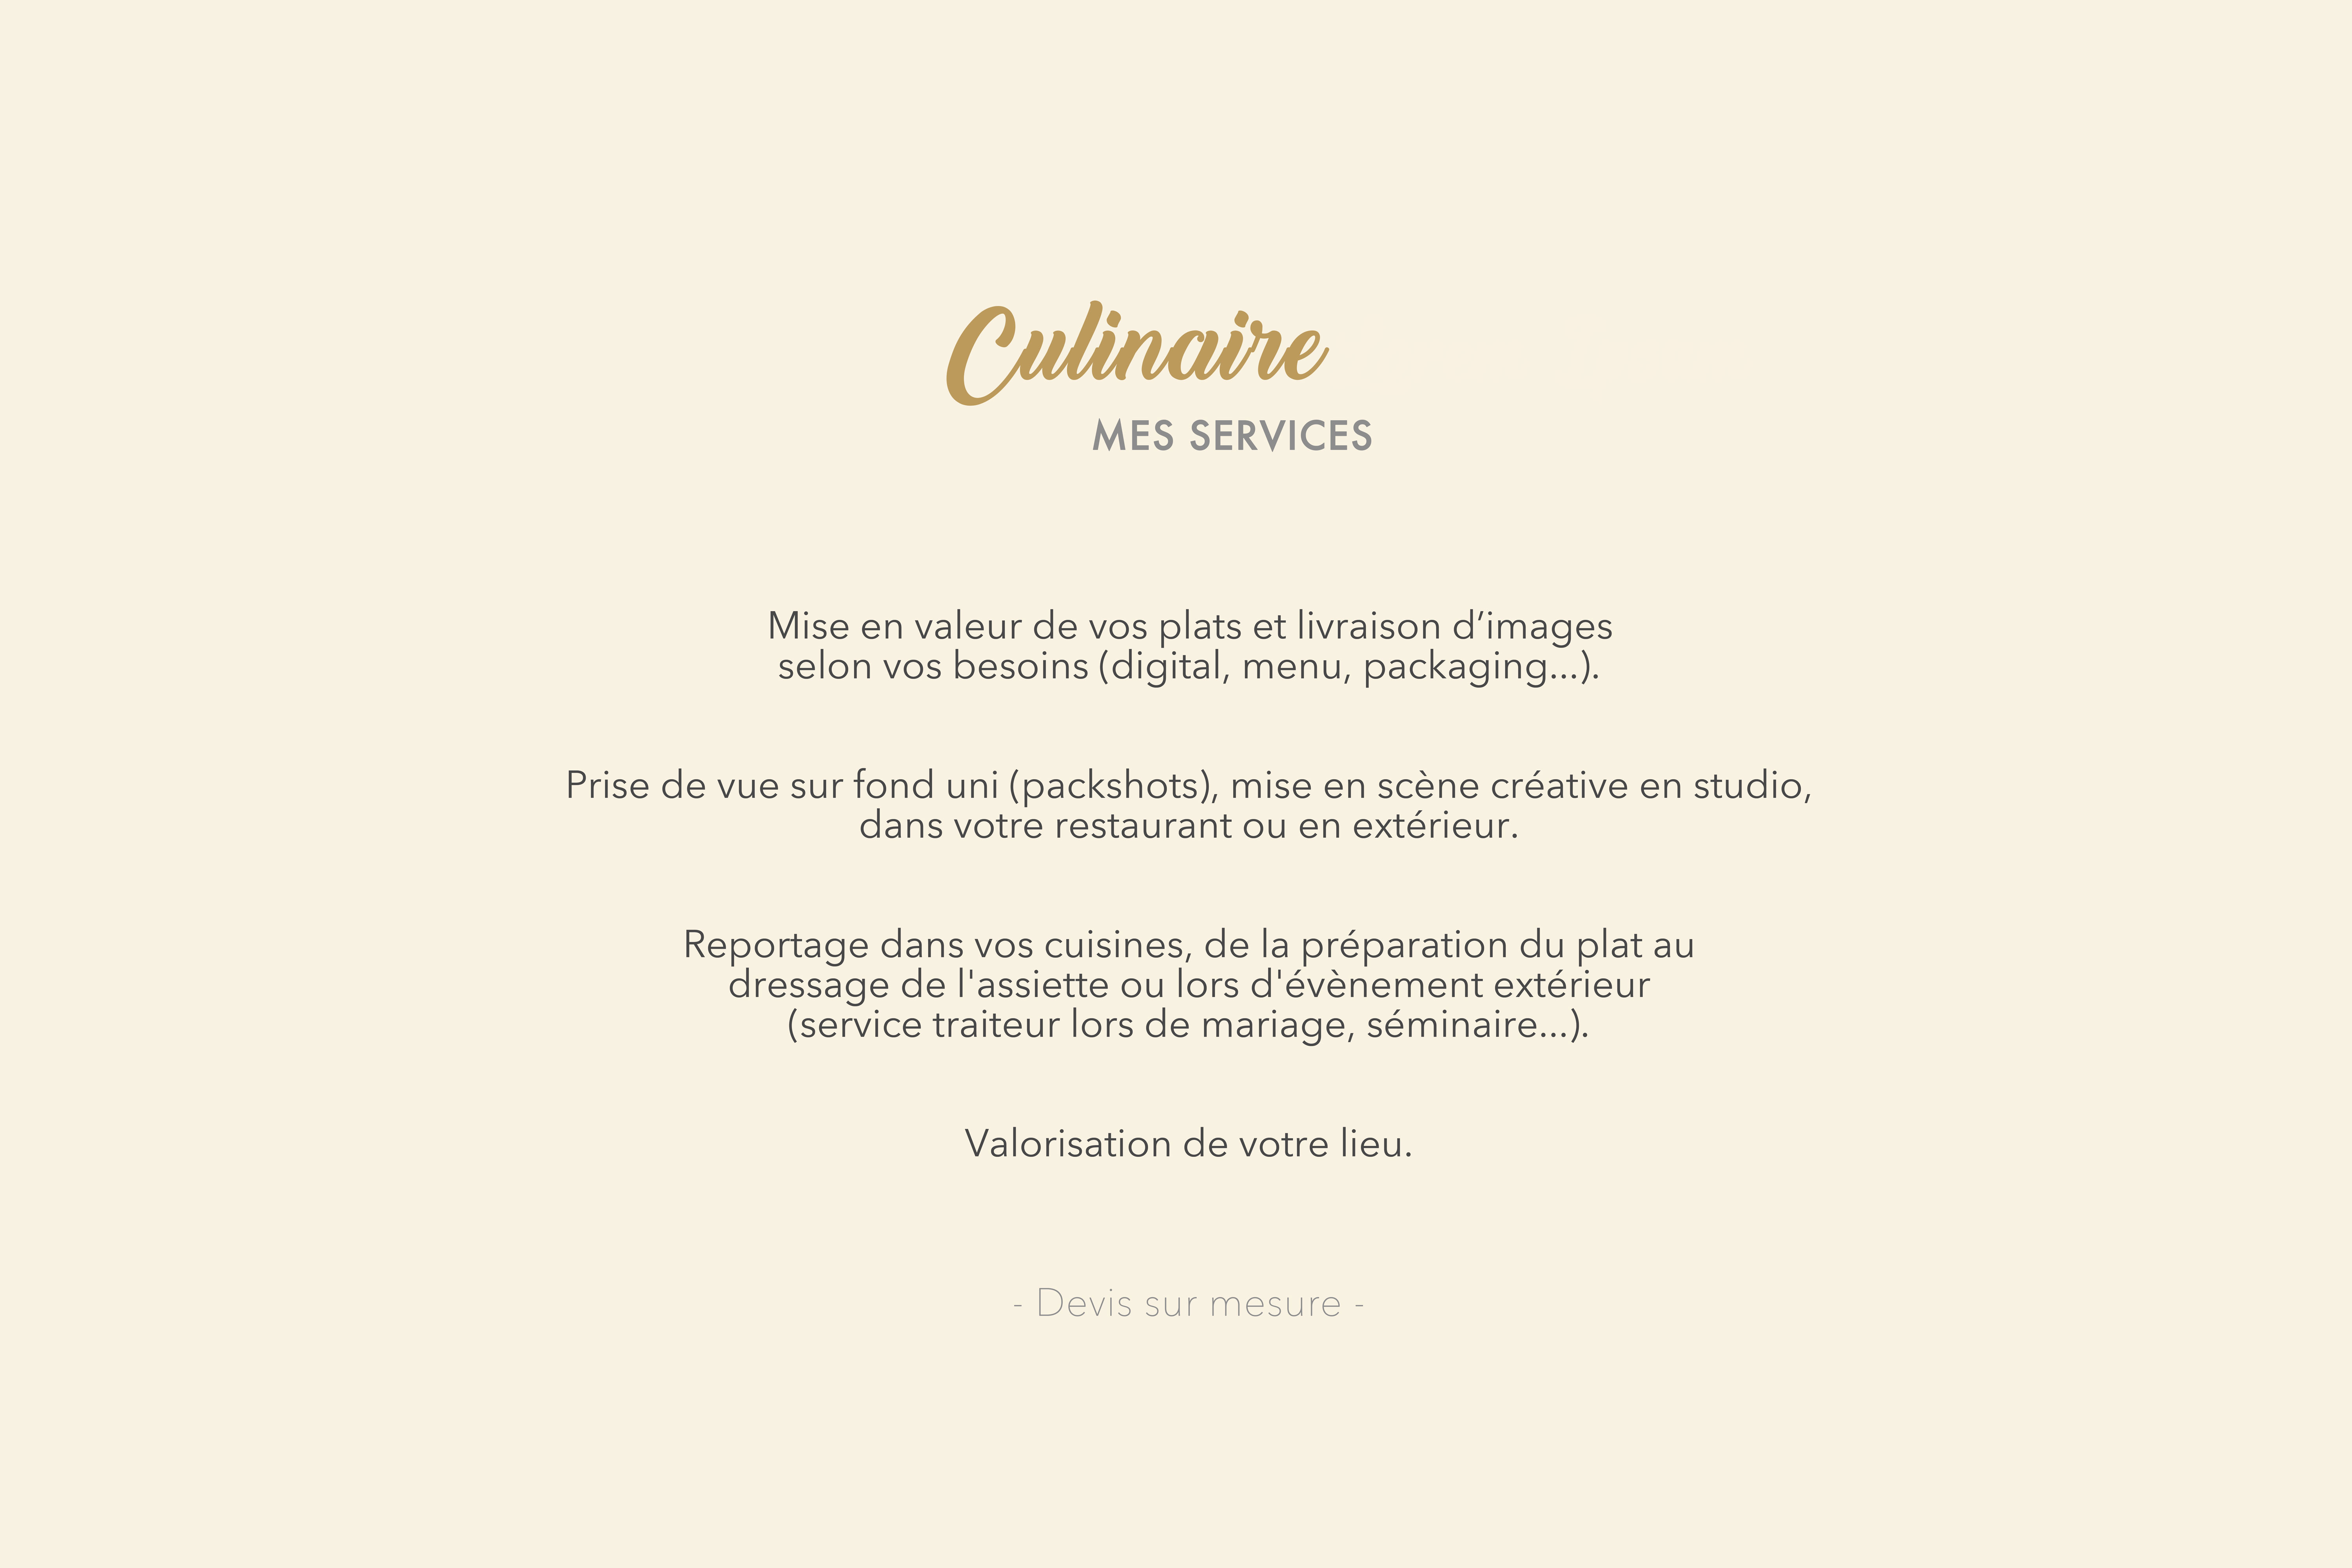 Formules-culinaire